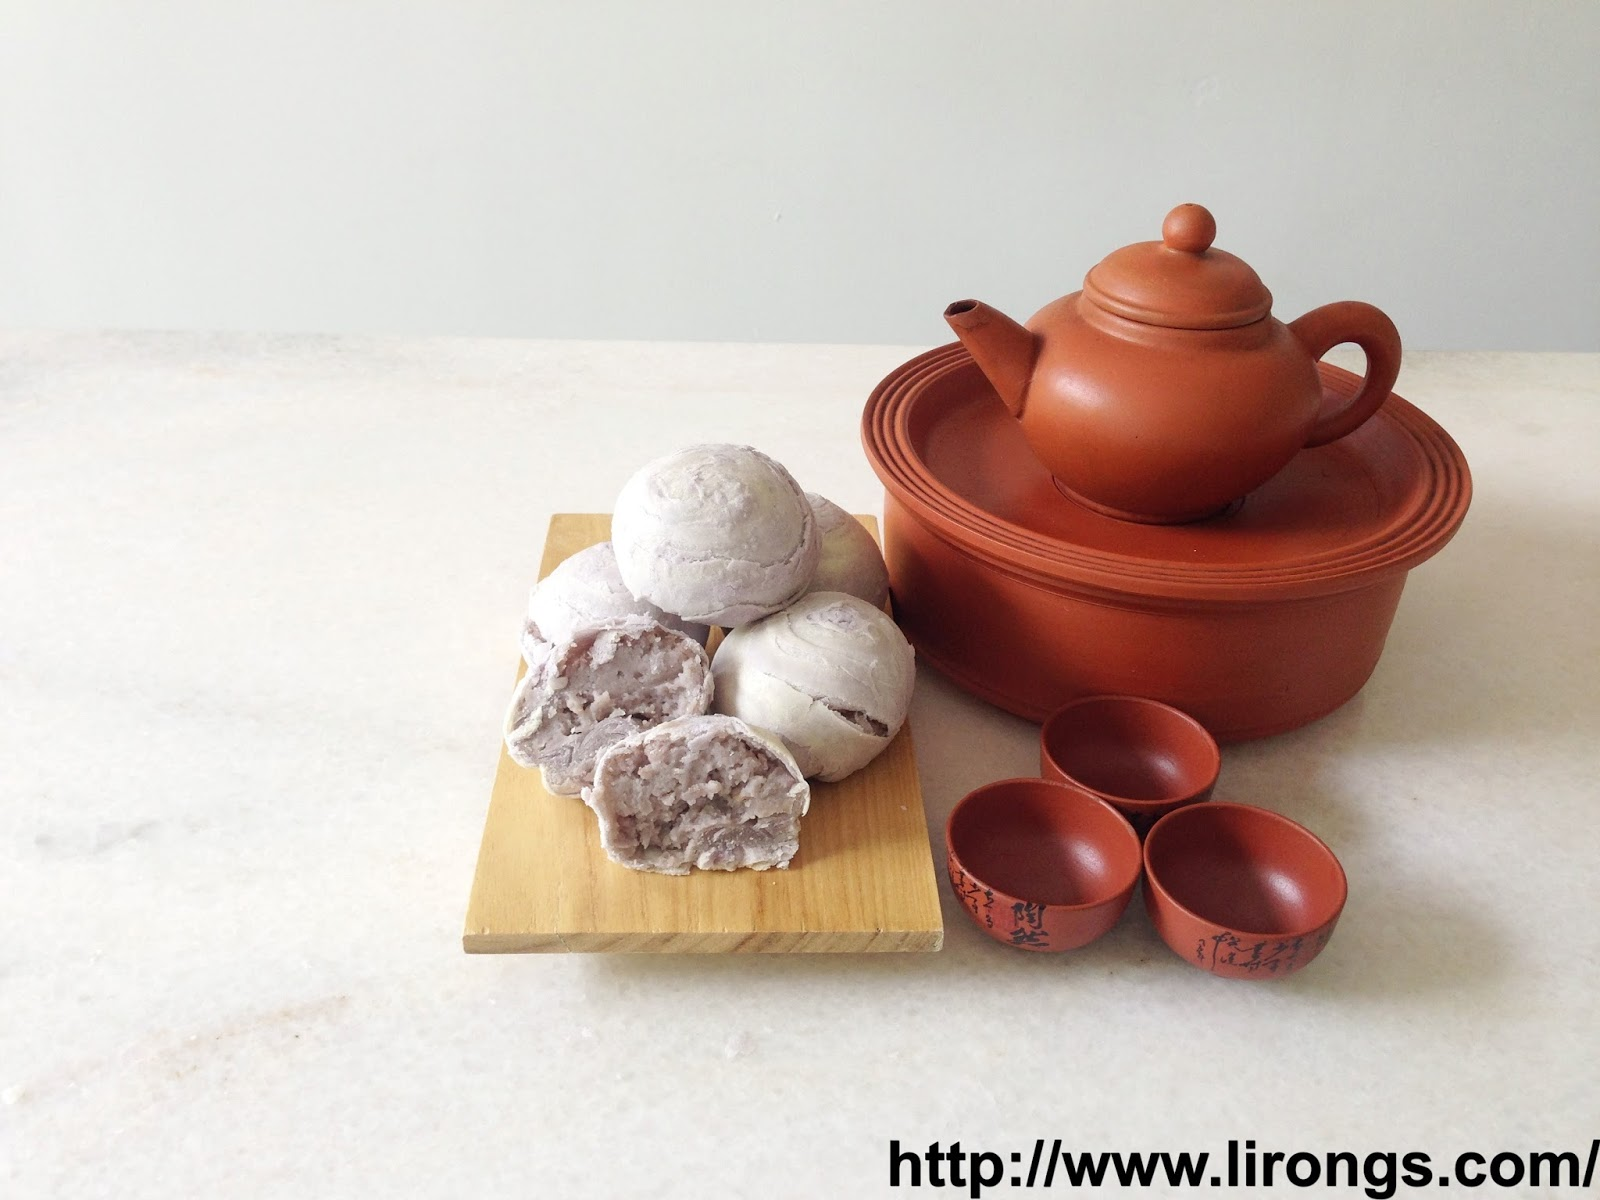 Lirong a singapore food and lifestyle blog happy mid autumn festival some other mooncakes that ive made over the years flaky swirl yam mooncake kristyandbryce Choice Image